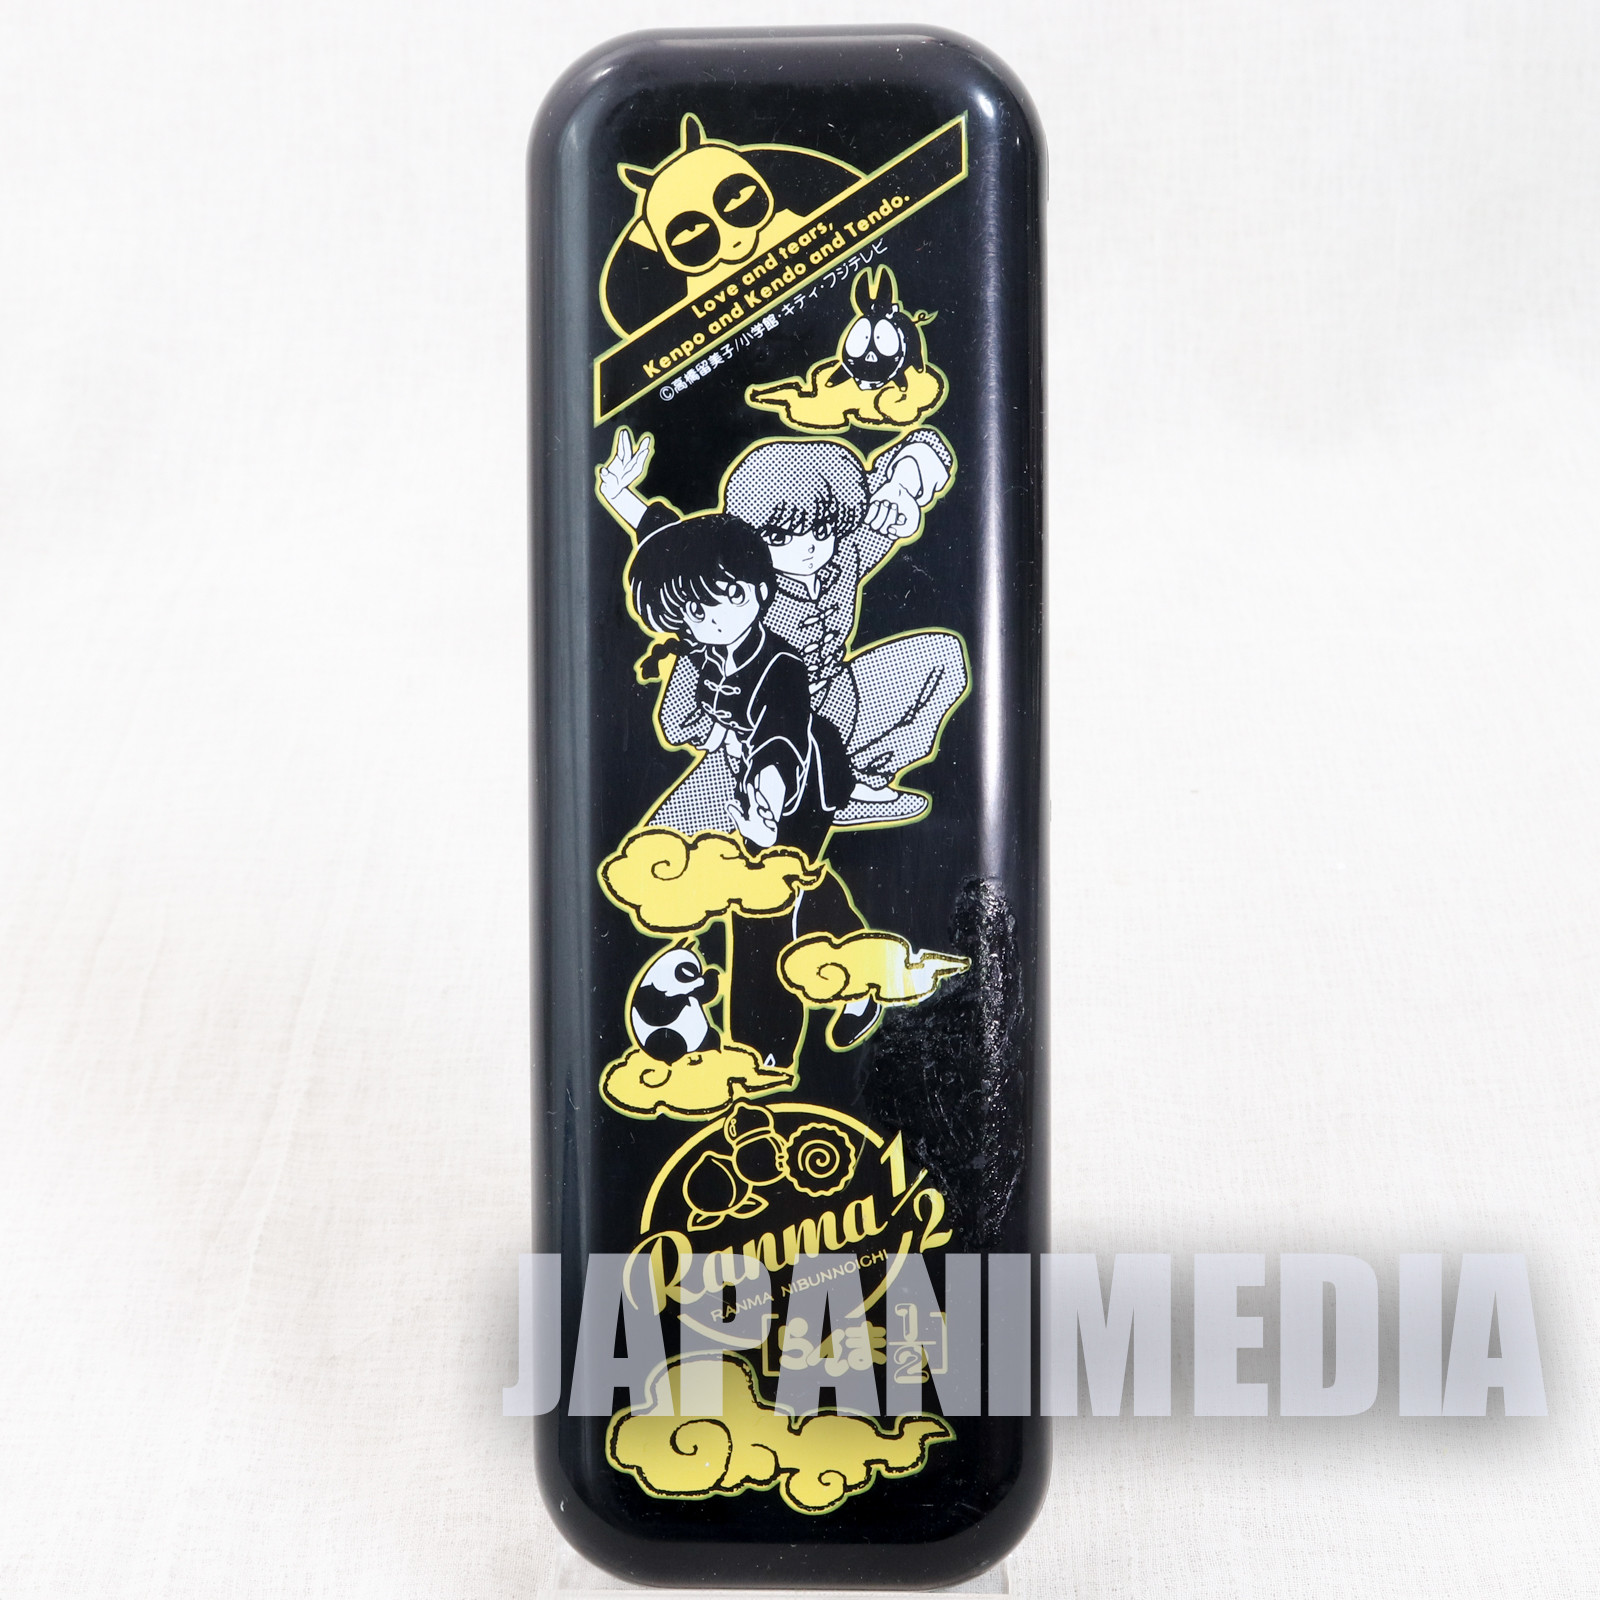 (DAMAGED) Ranma 1/2 Plastic Pen Case Seika Note JAPAN ANIME MANGA